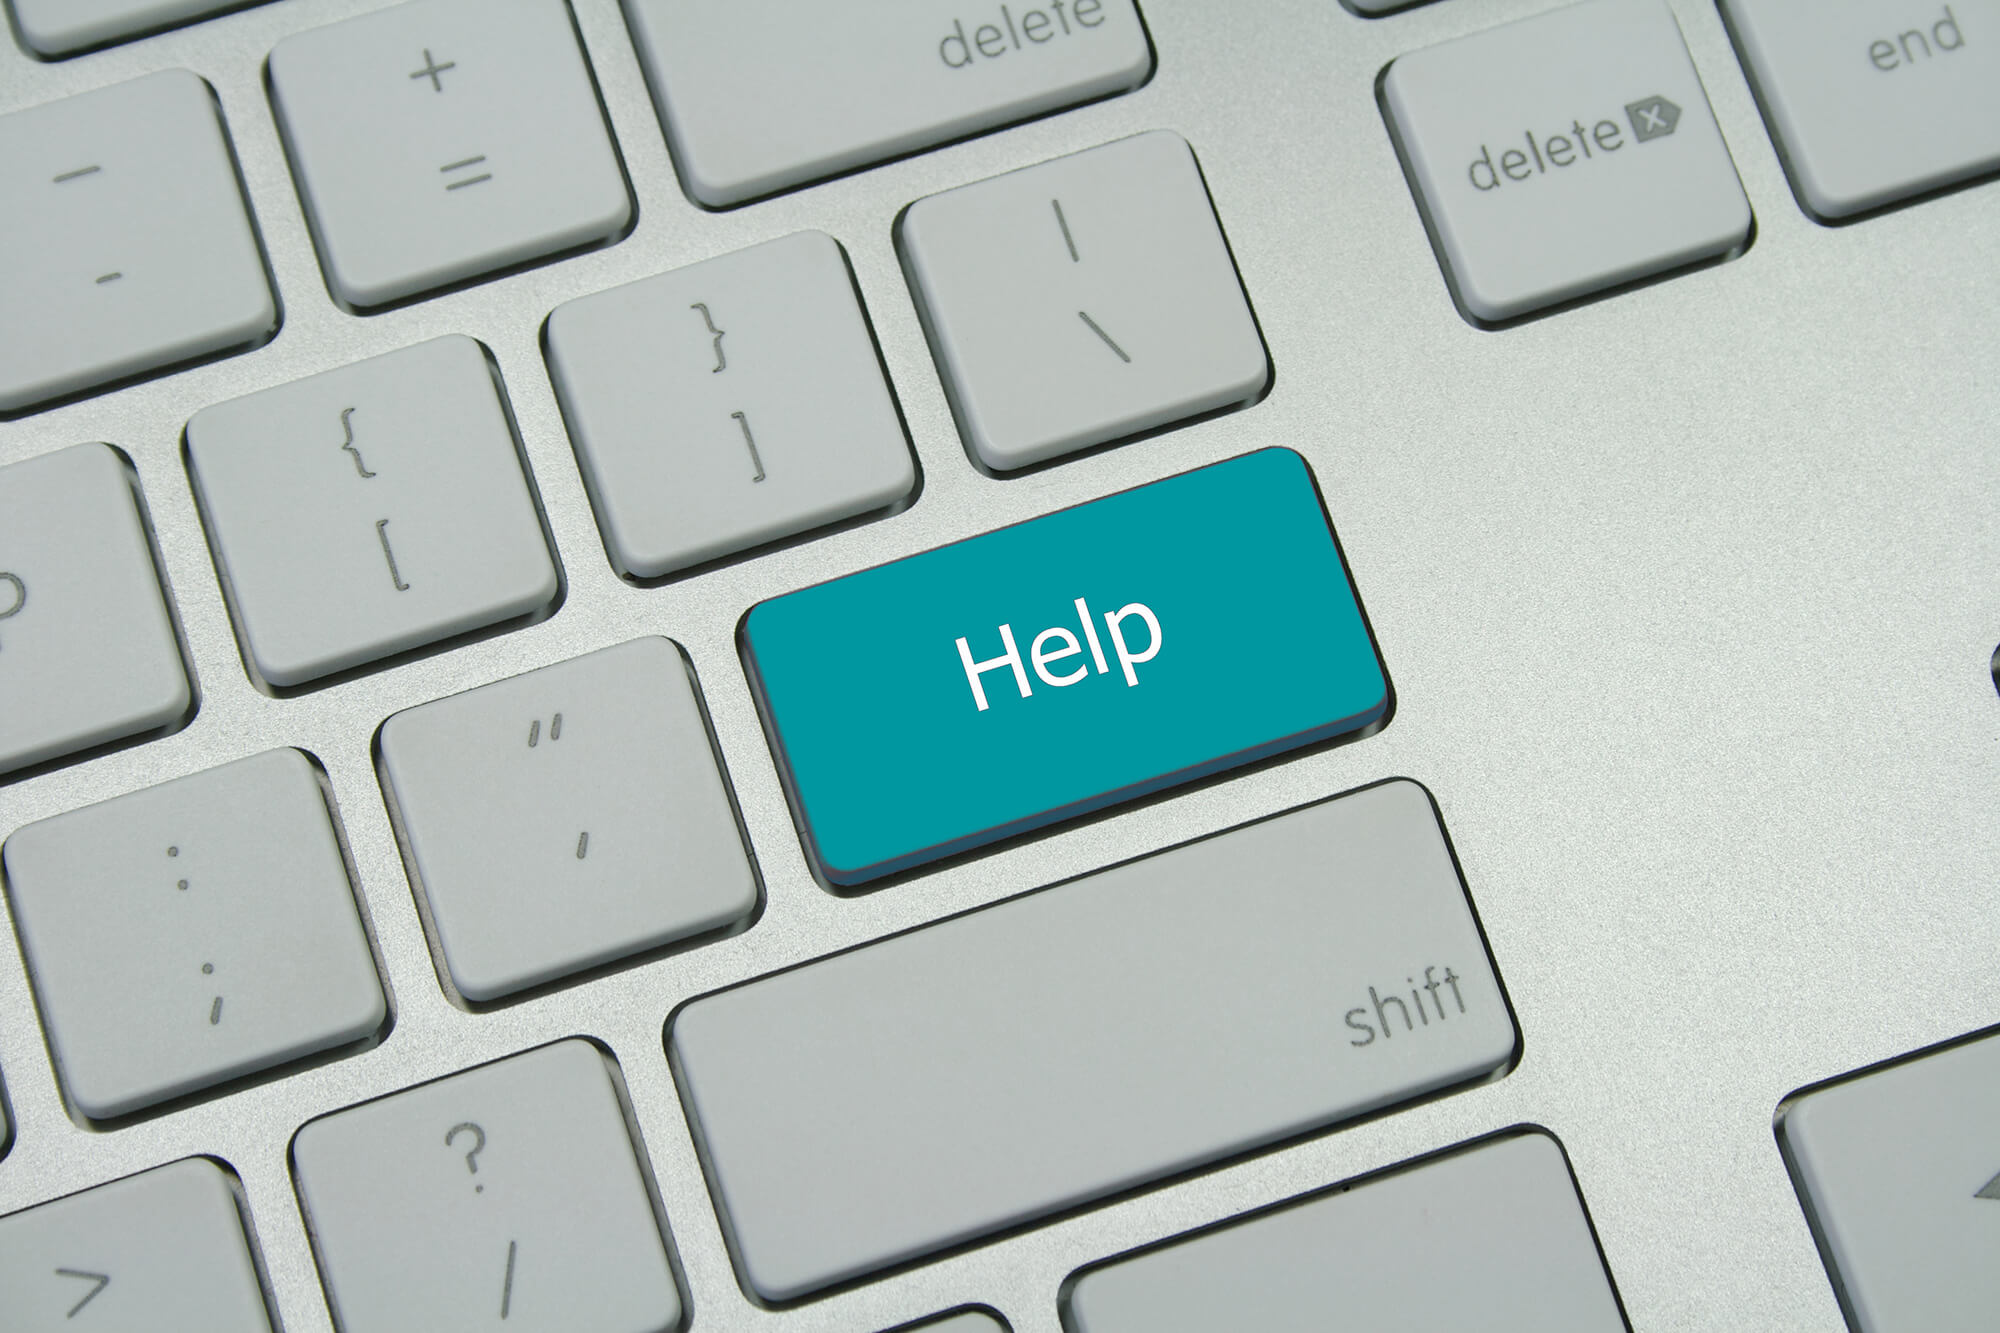 Laptop keyboard with word 'Help' replacing the enter key